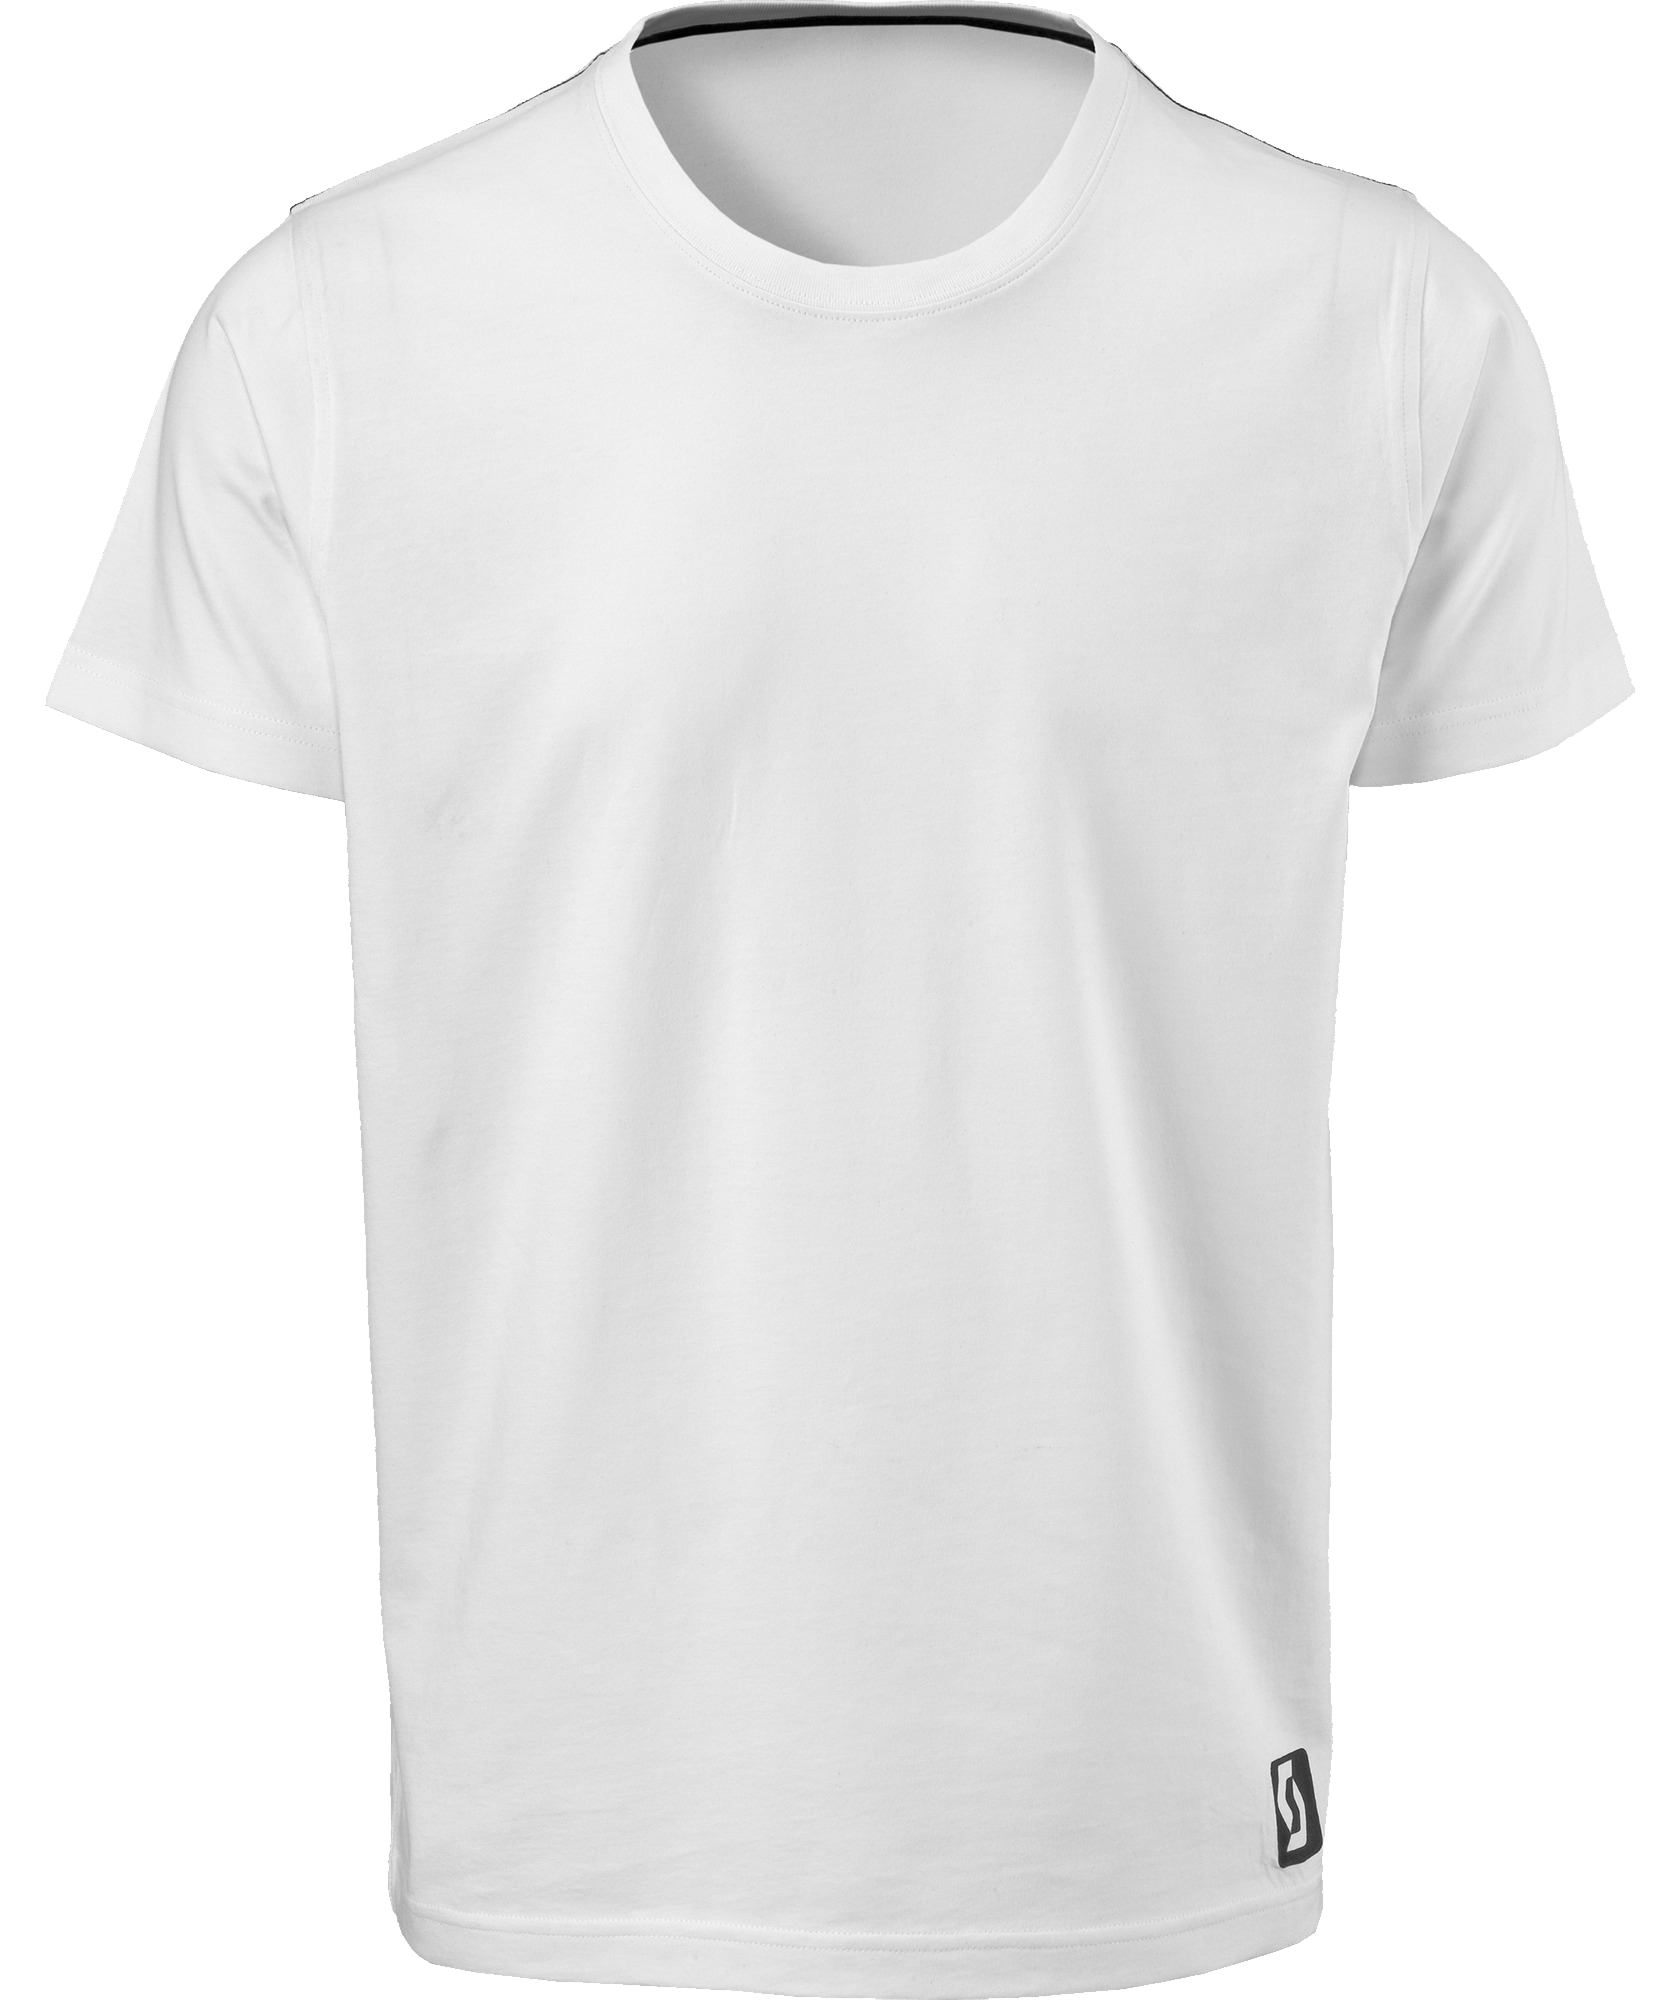 White t shirt png clipart best for Who makes the best white t shirts